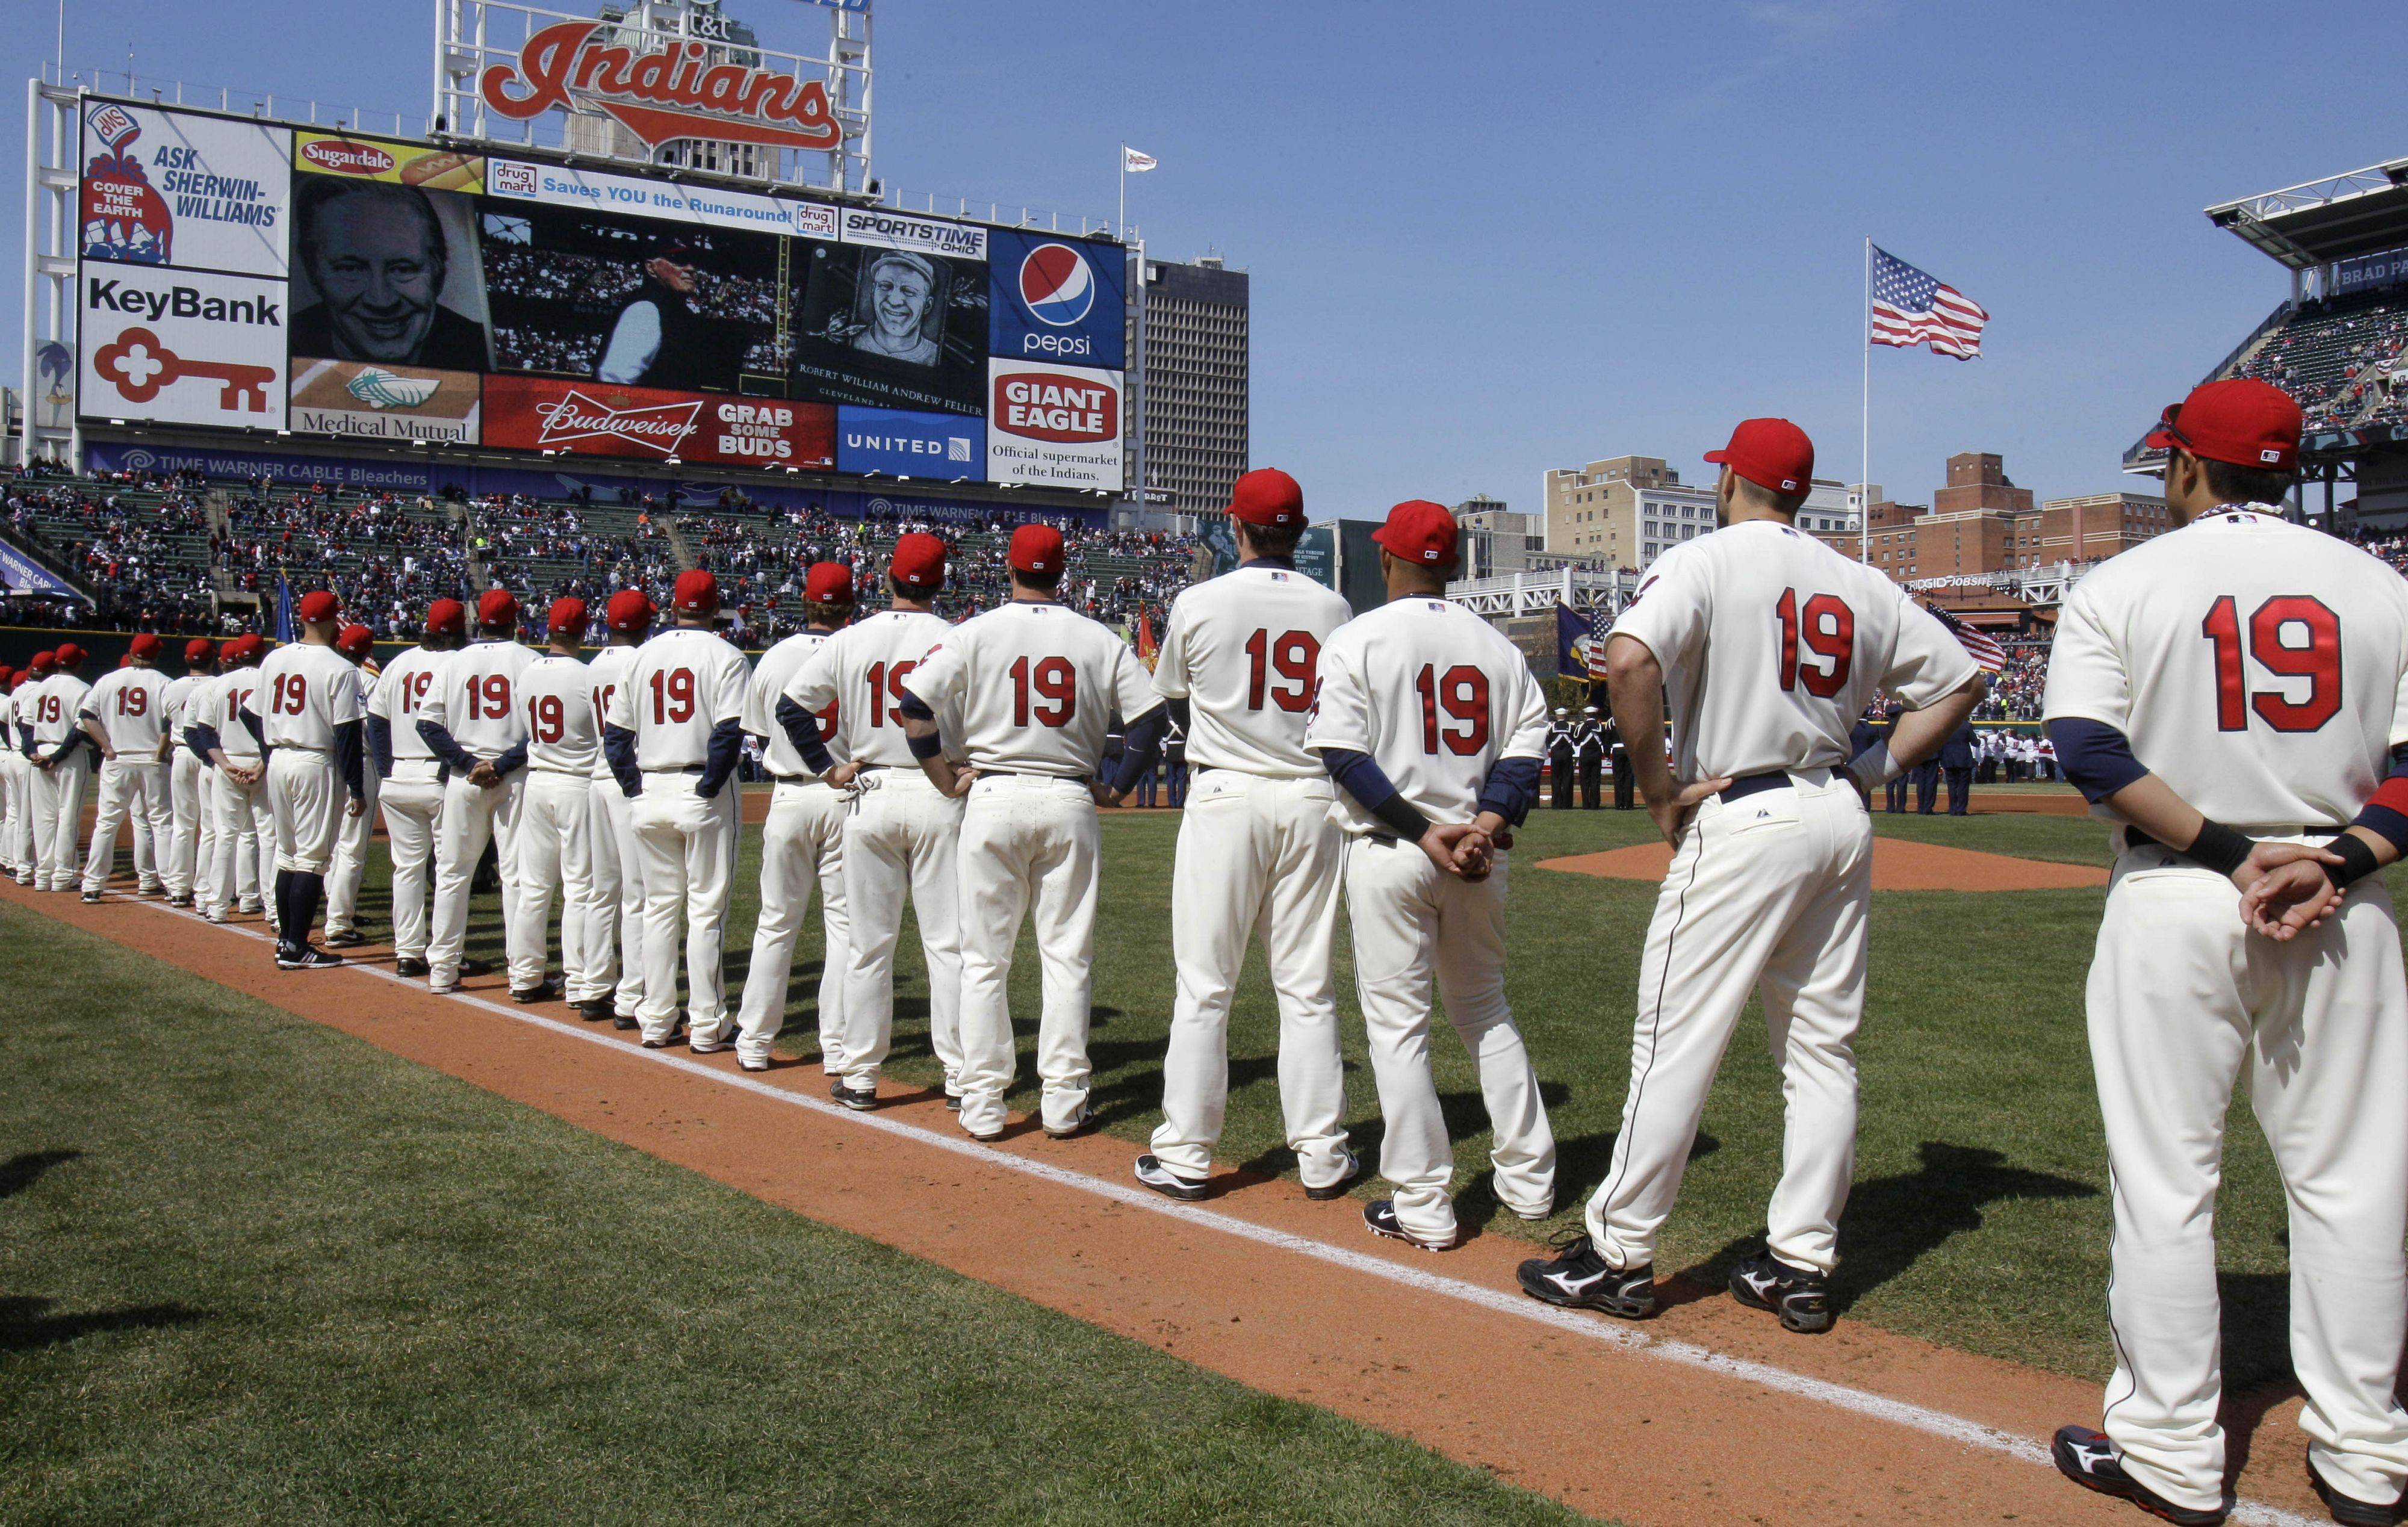 Members of the Cleveland Indians, all wearing No. 19, line up on the field during a special video tribute to the late Indians player Bob Feller before playing the Chicago White Sox in an opening day baseball game onFriday, April 1, 2011, in Cleveland.